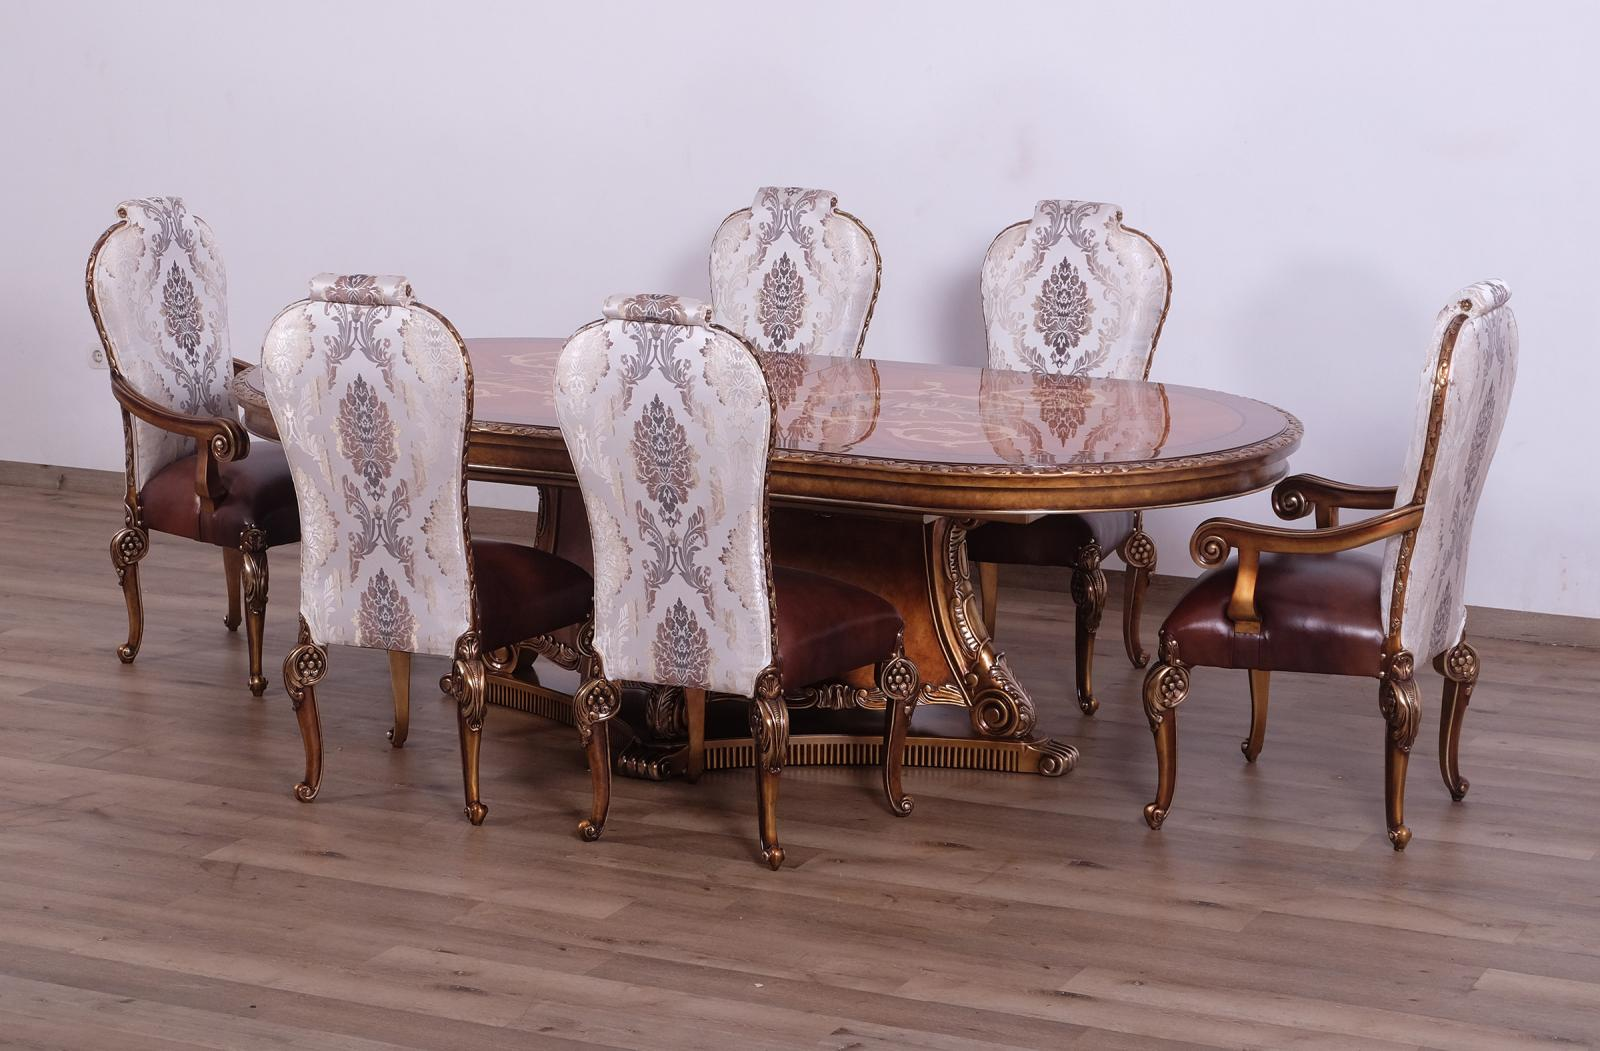 Contemporary, Modern Bronze, Gold  and Wood, Solid Hardwood Dining Table Set 7 pcs BELLAGIO by European Furniture